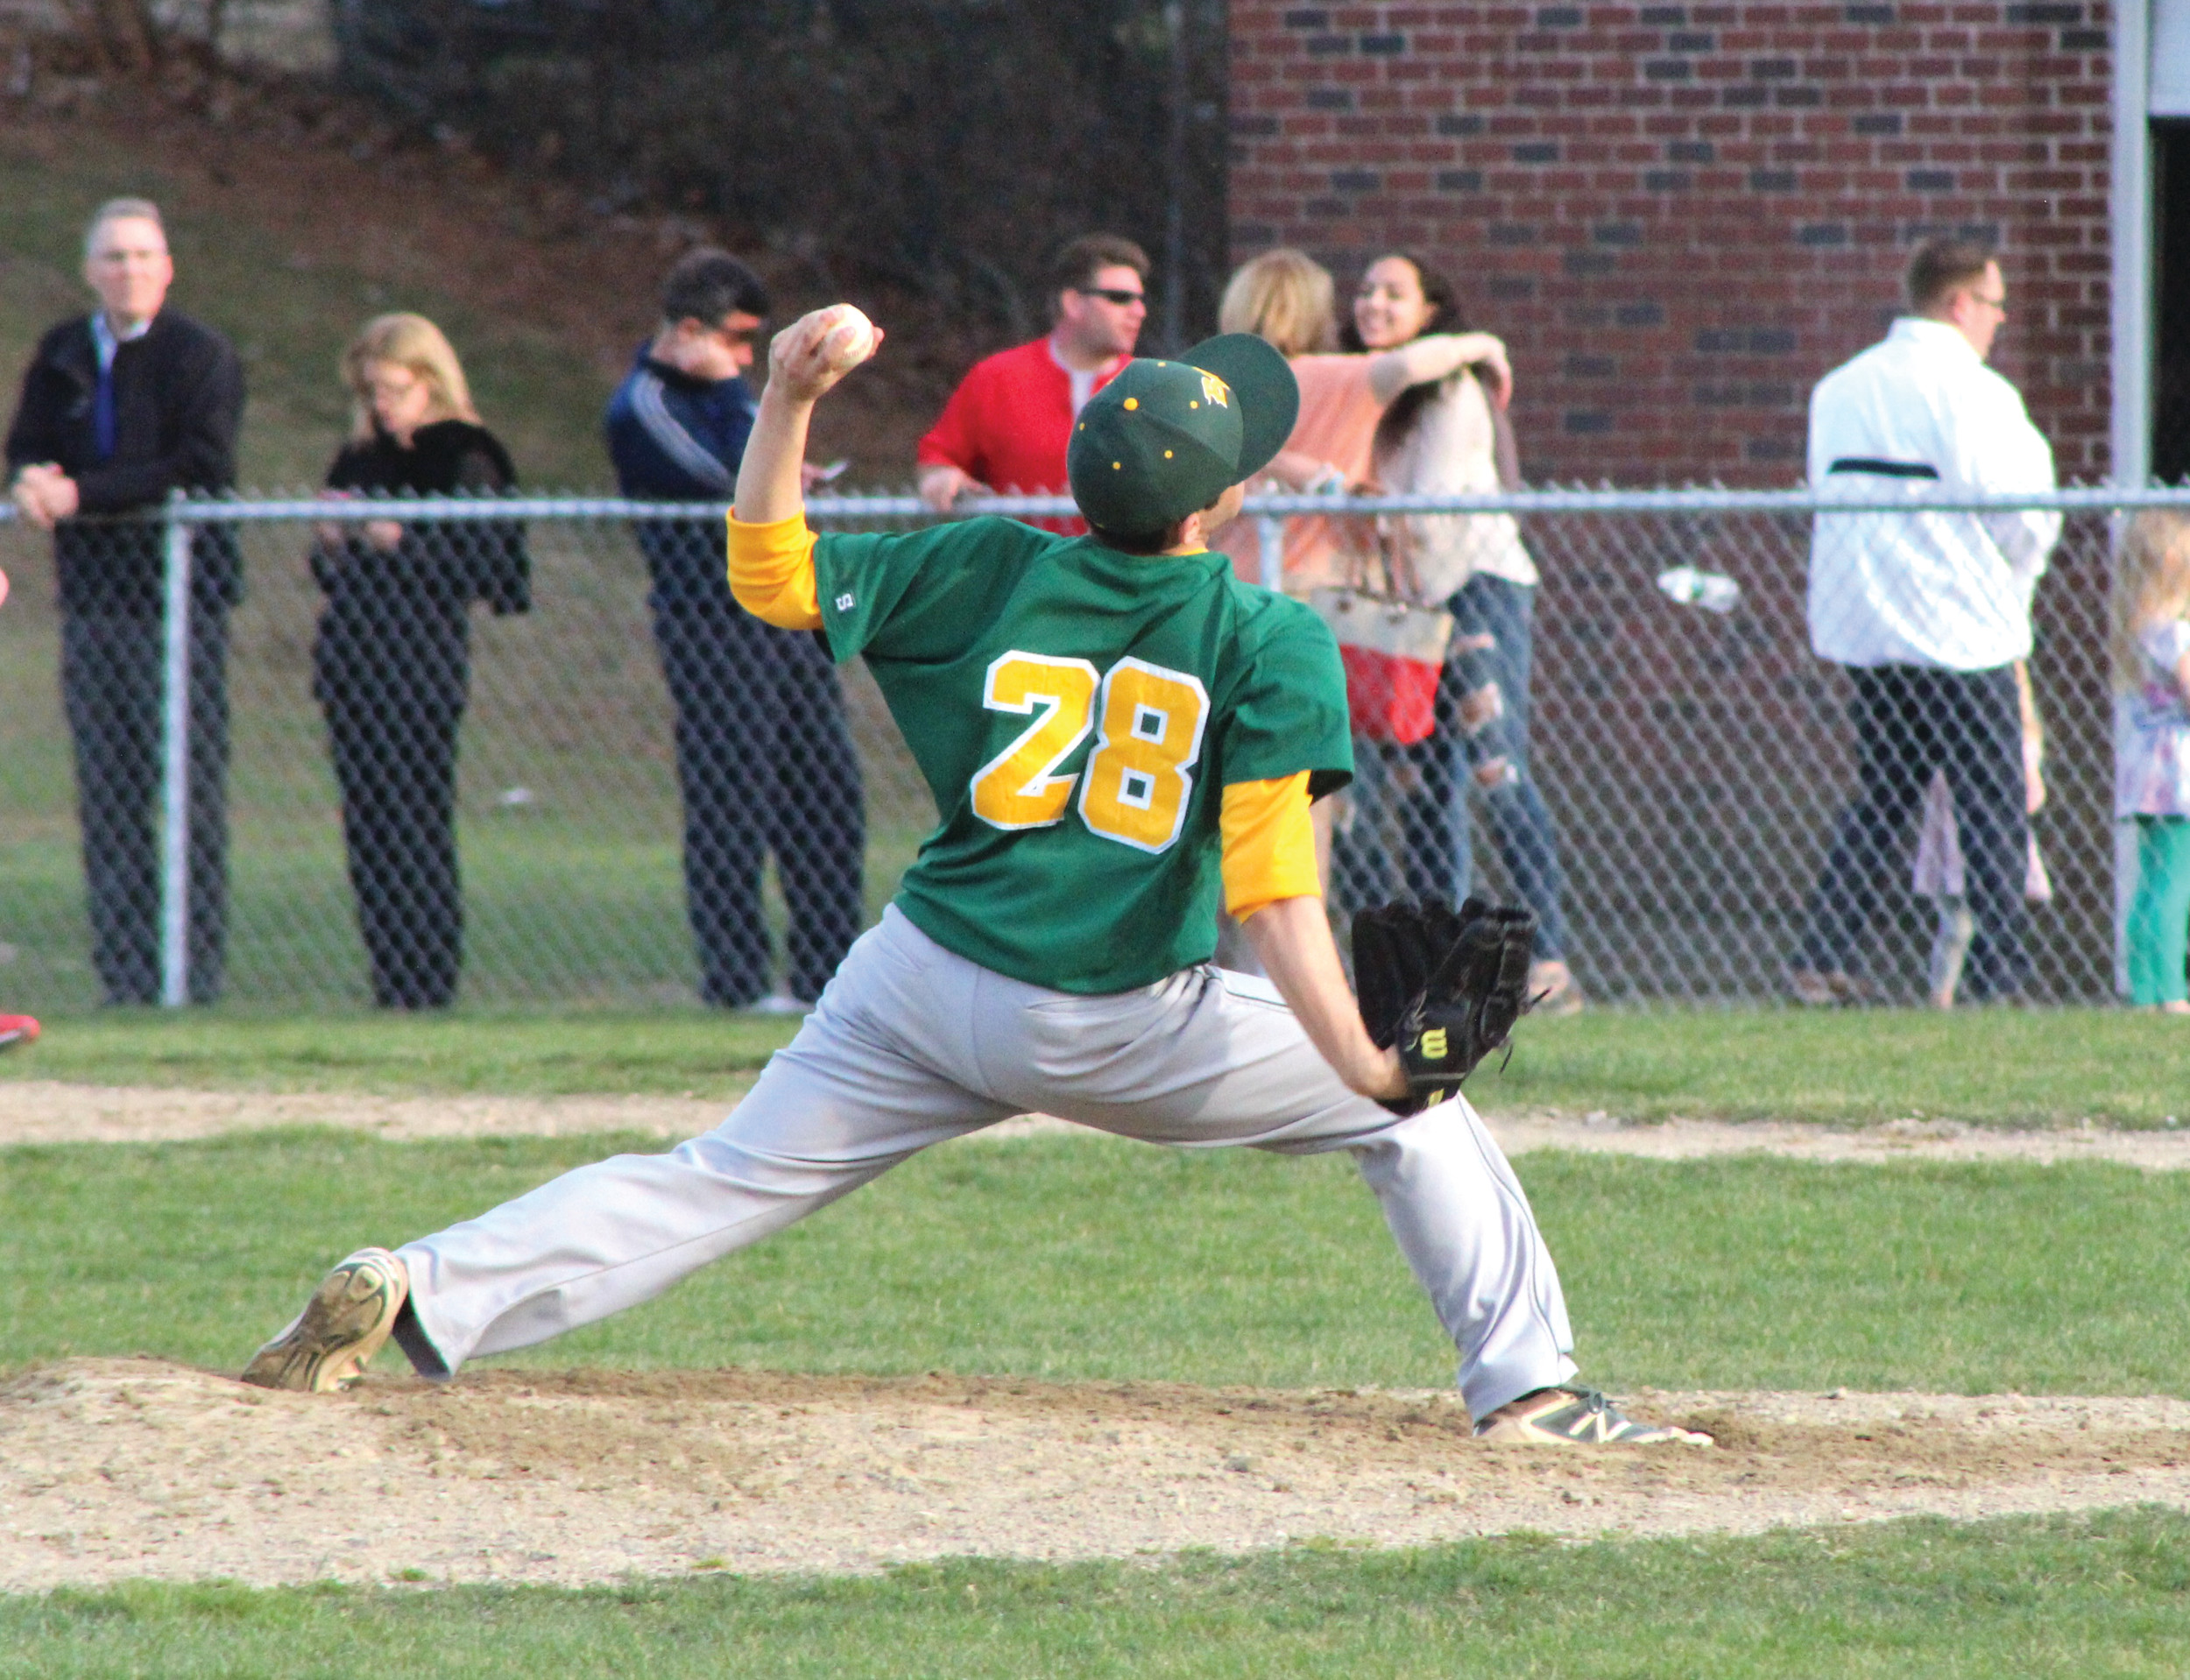 STRONG DEBUT: Hendricken sophomore left-hander Kyle Marrapese picked up the win against West, tossing 3 2/3 innings or scoreless relief.